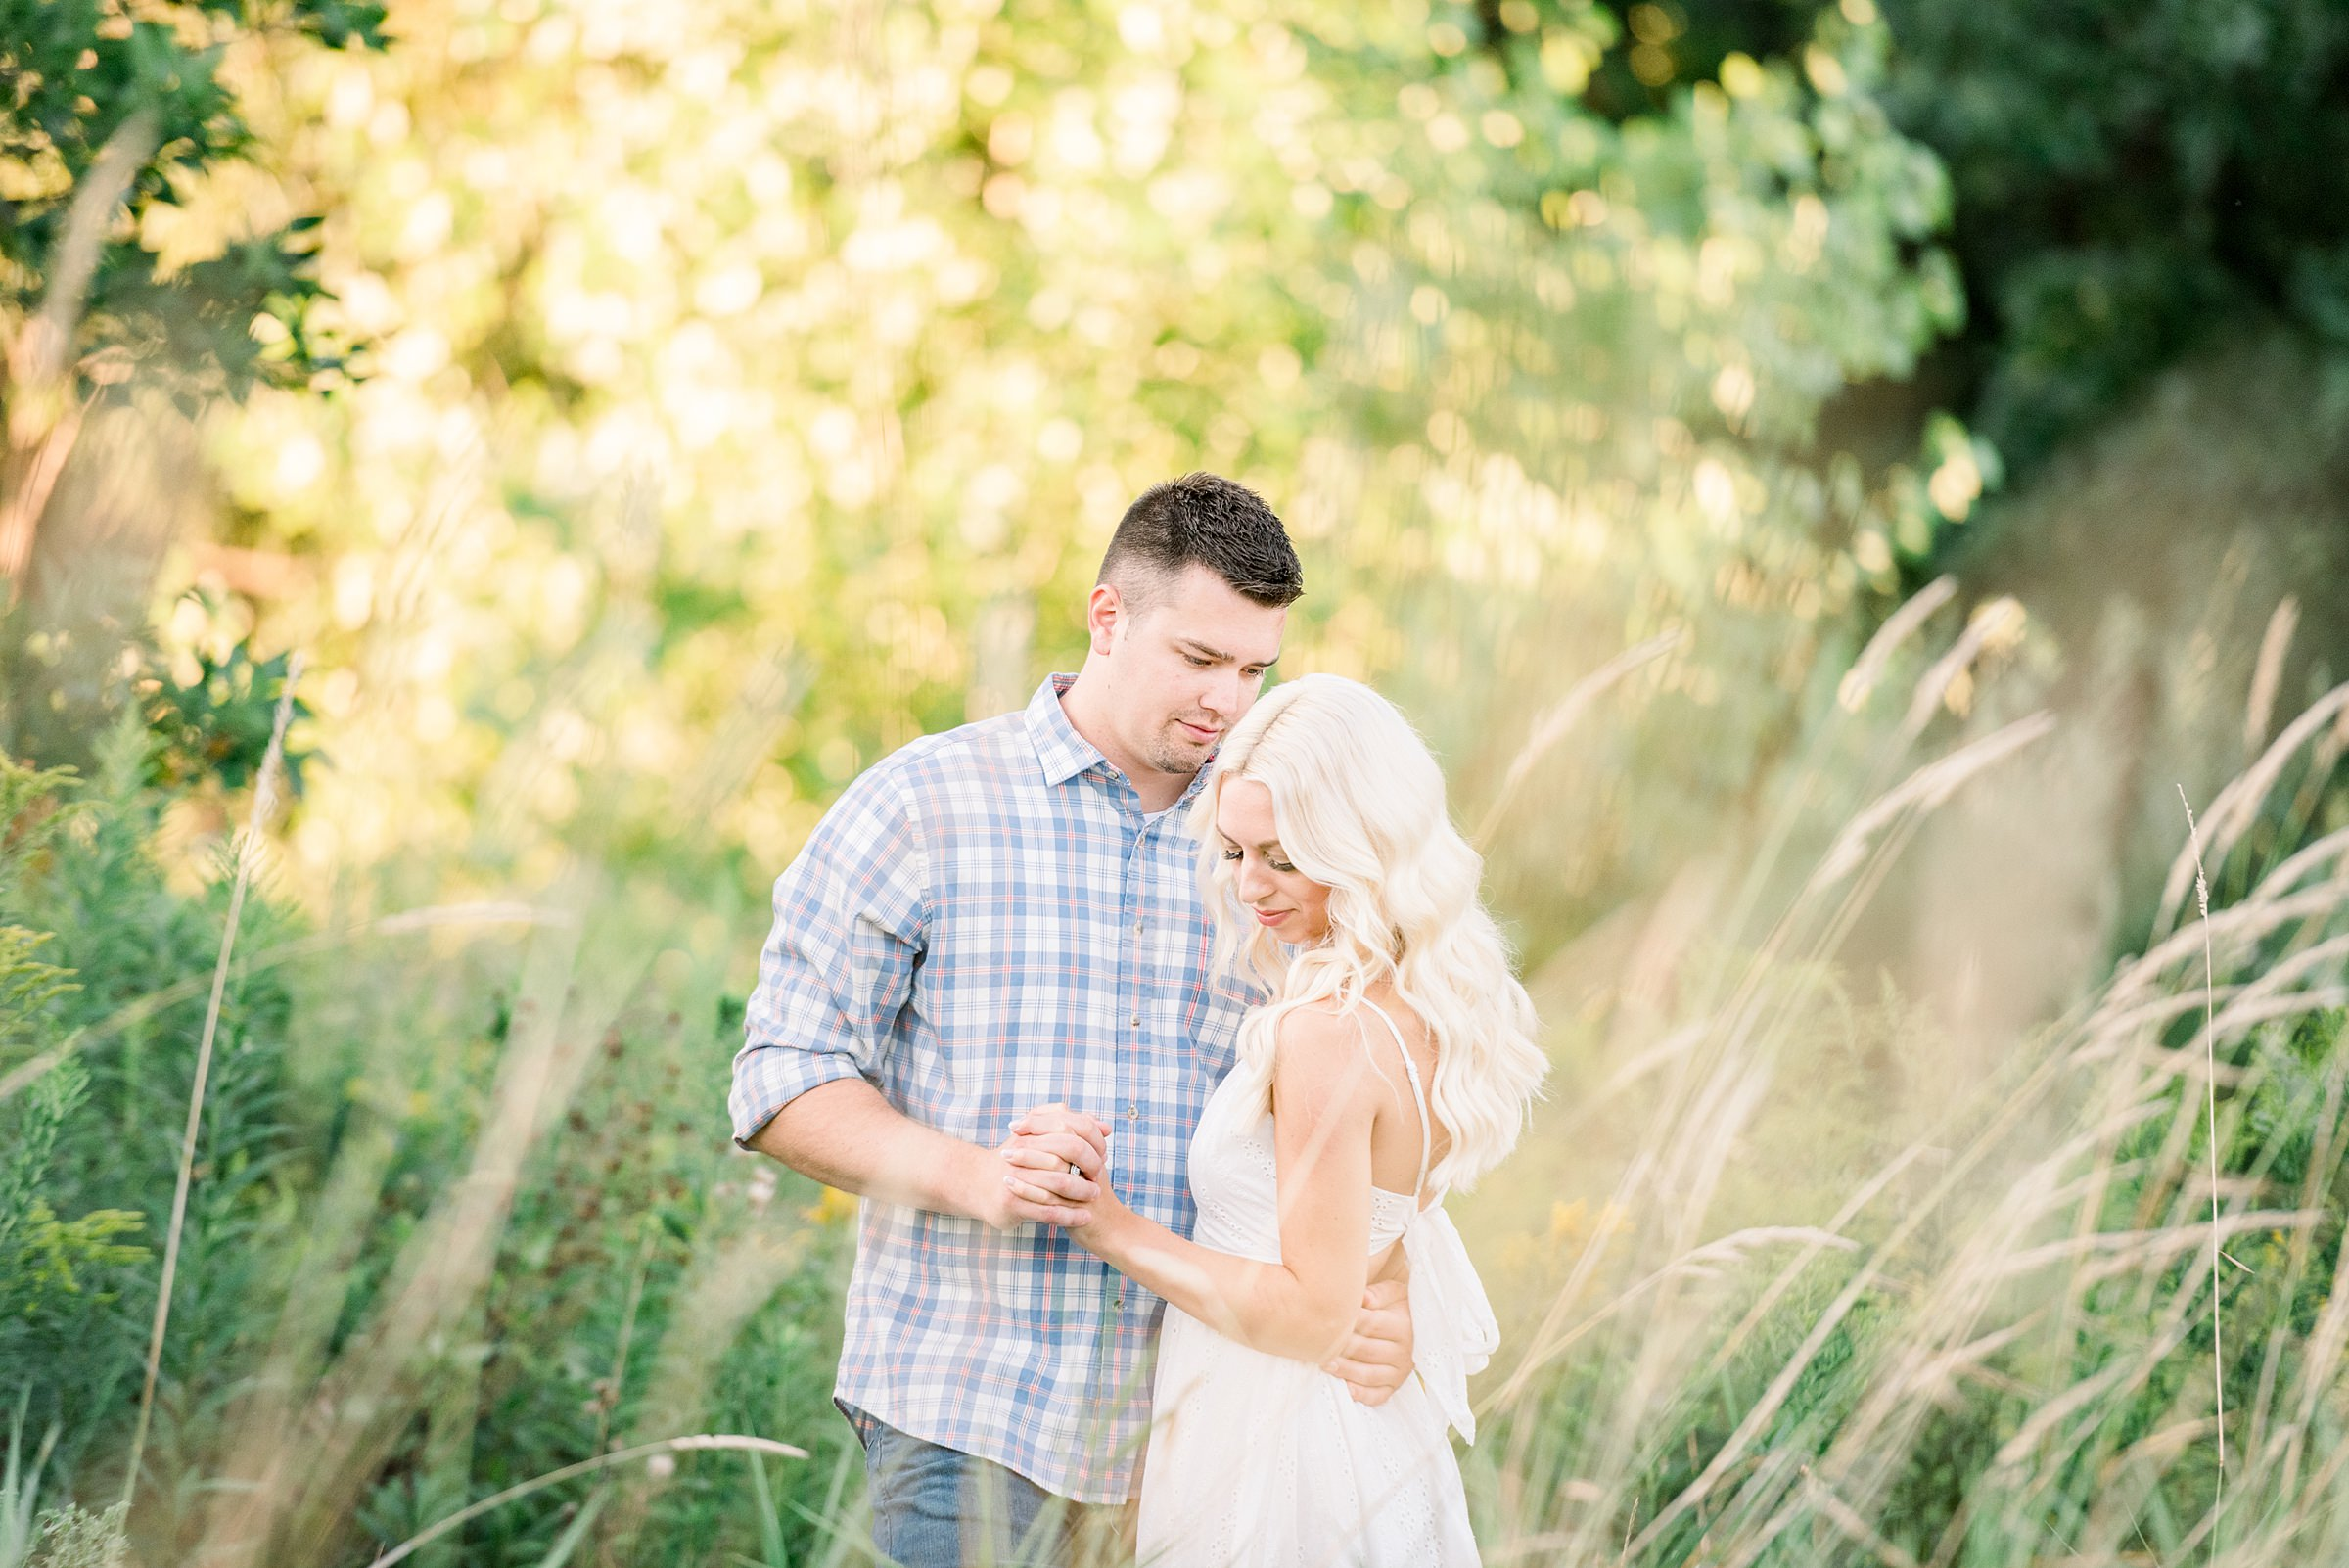 Appleton, WI Engagement Photographer - Larissa Marie Photography